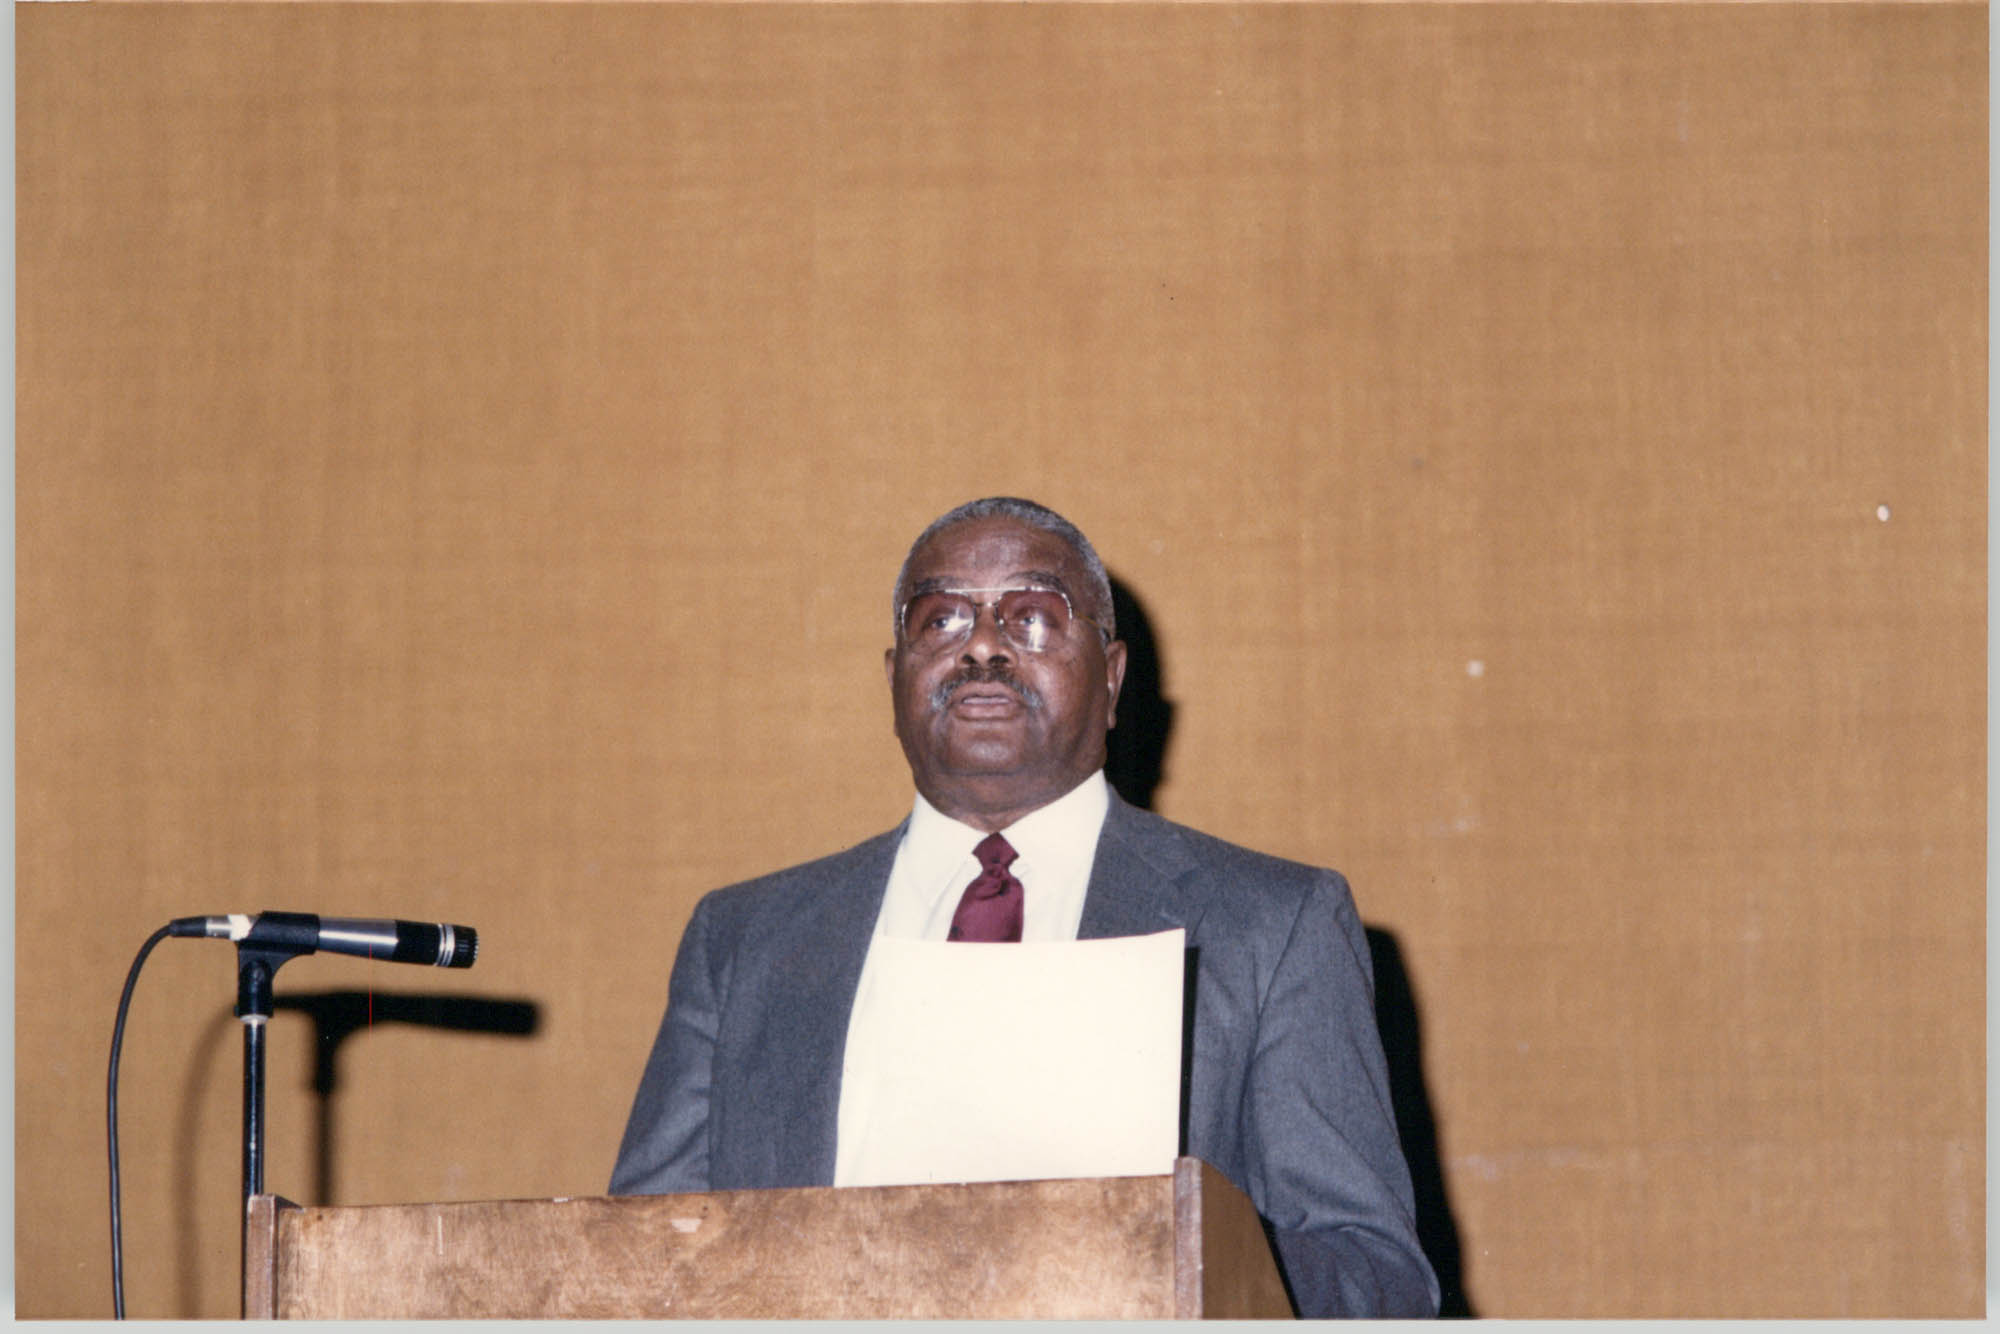 Photograph of Leroy F. Anderson at a College of Charleston Event